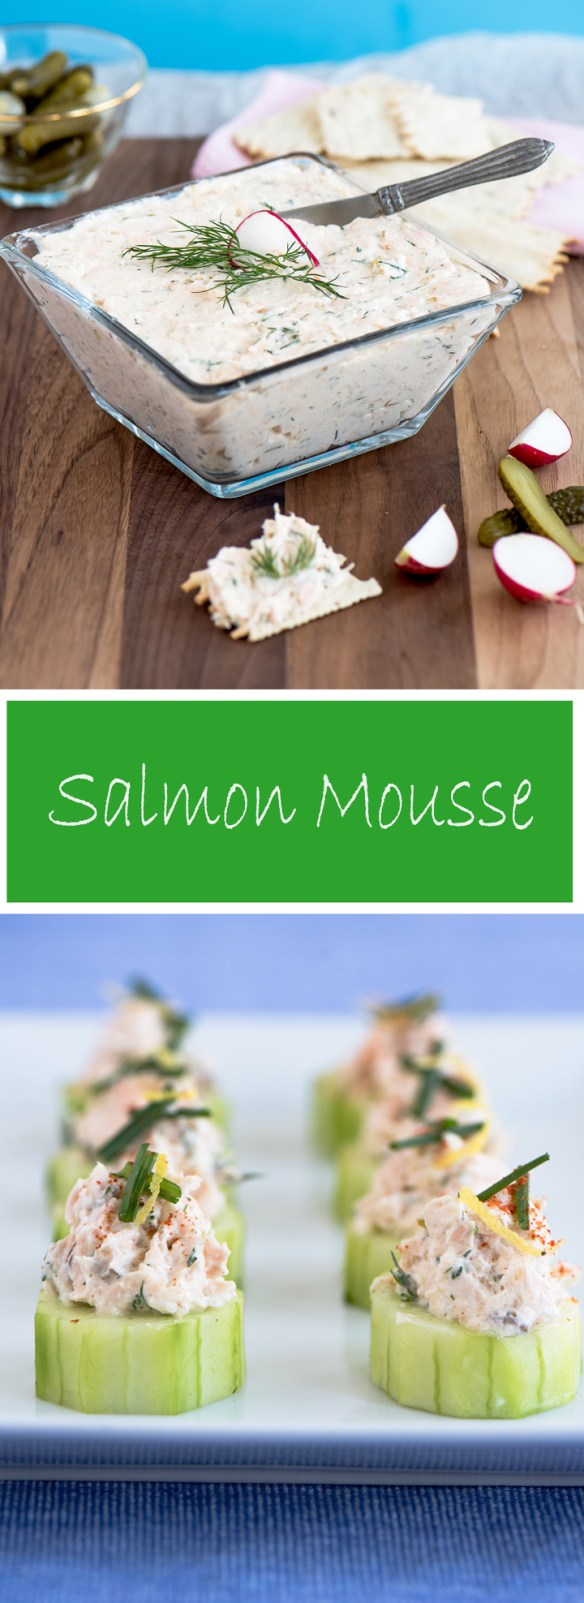 Airy Salmon Mousse recipe. A delicious classic appetizer for a special occasion.